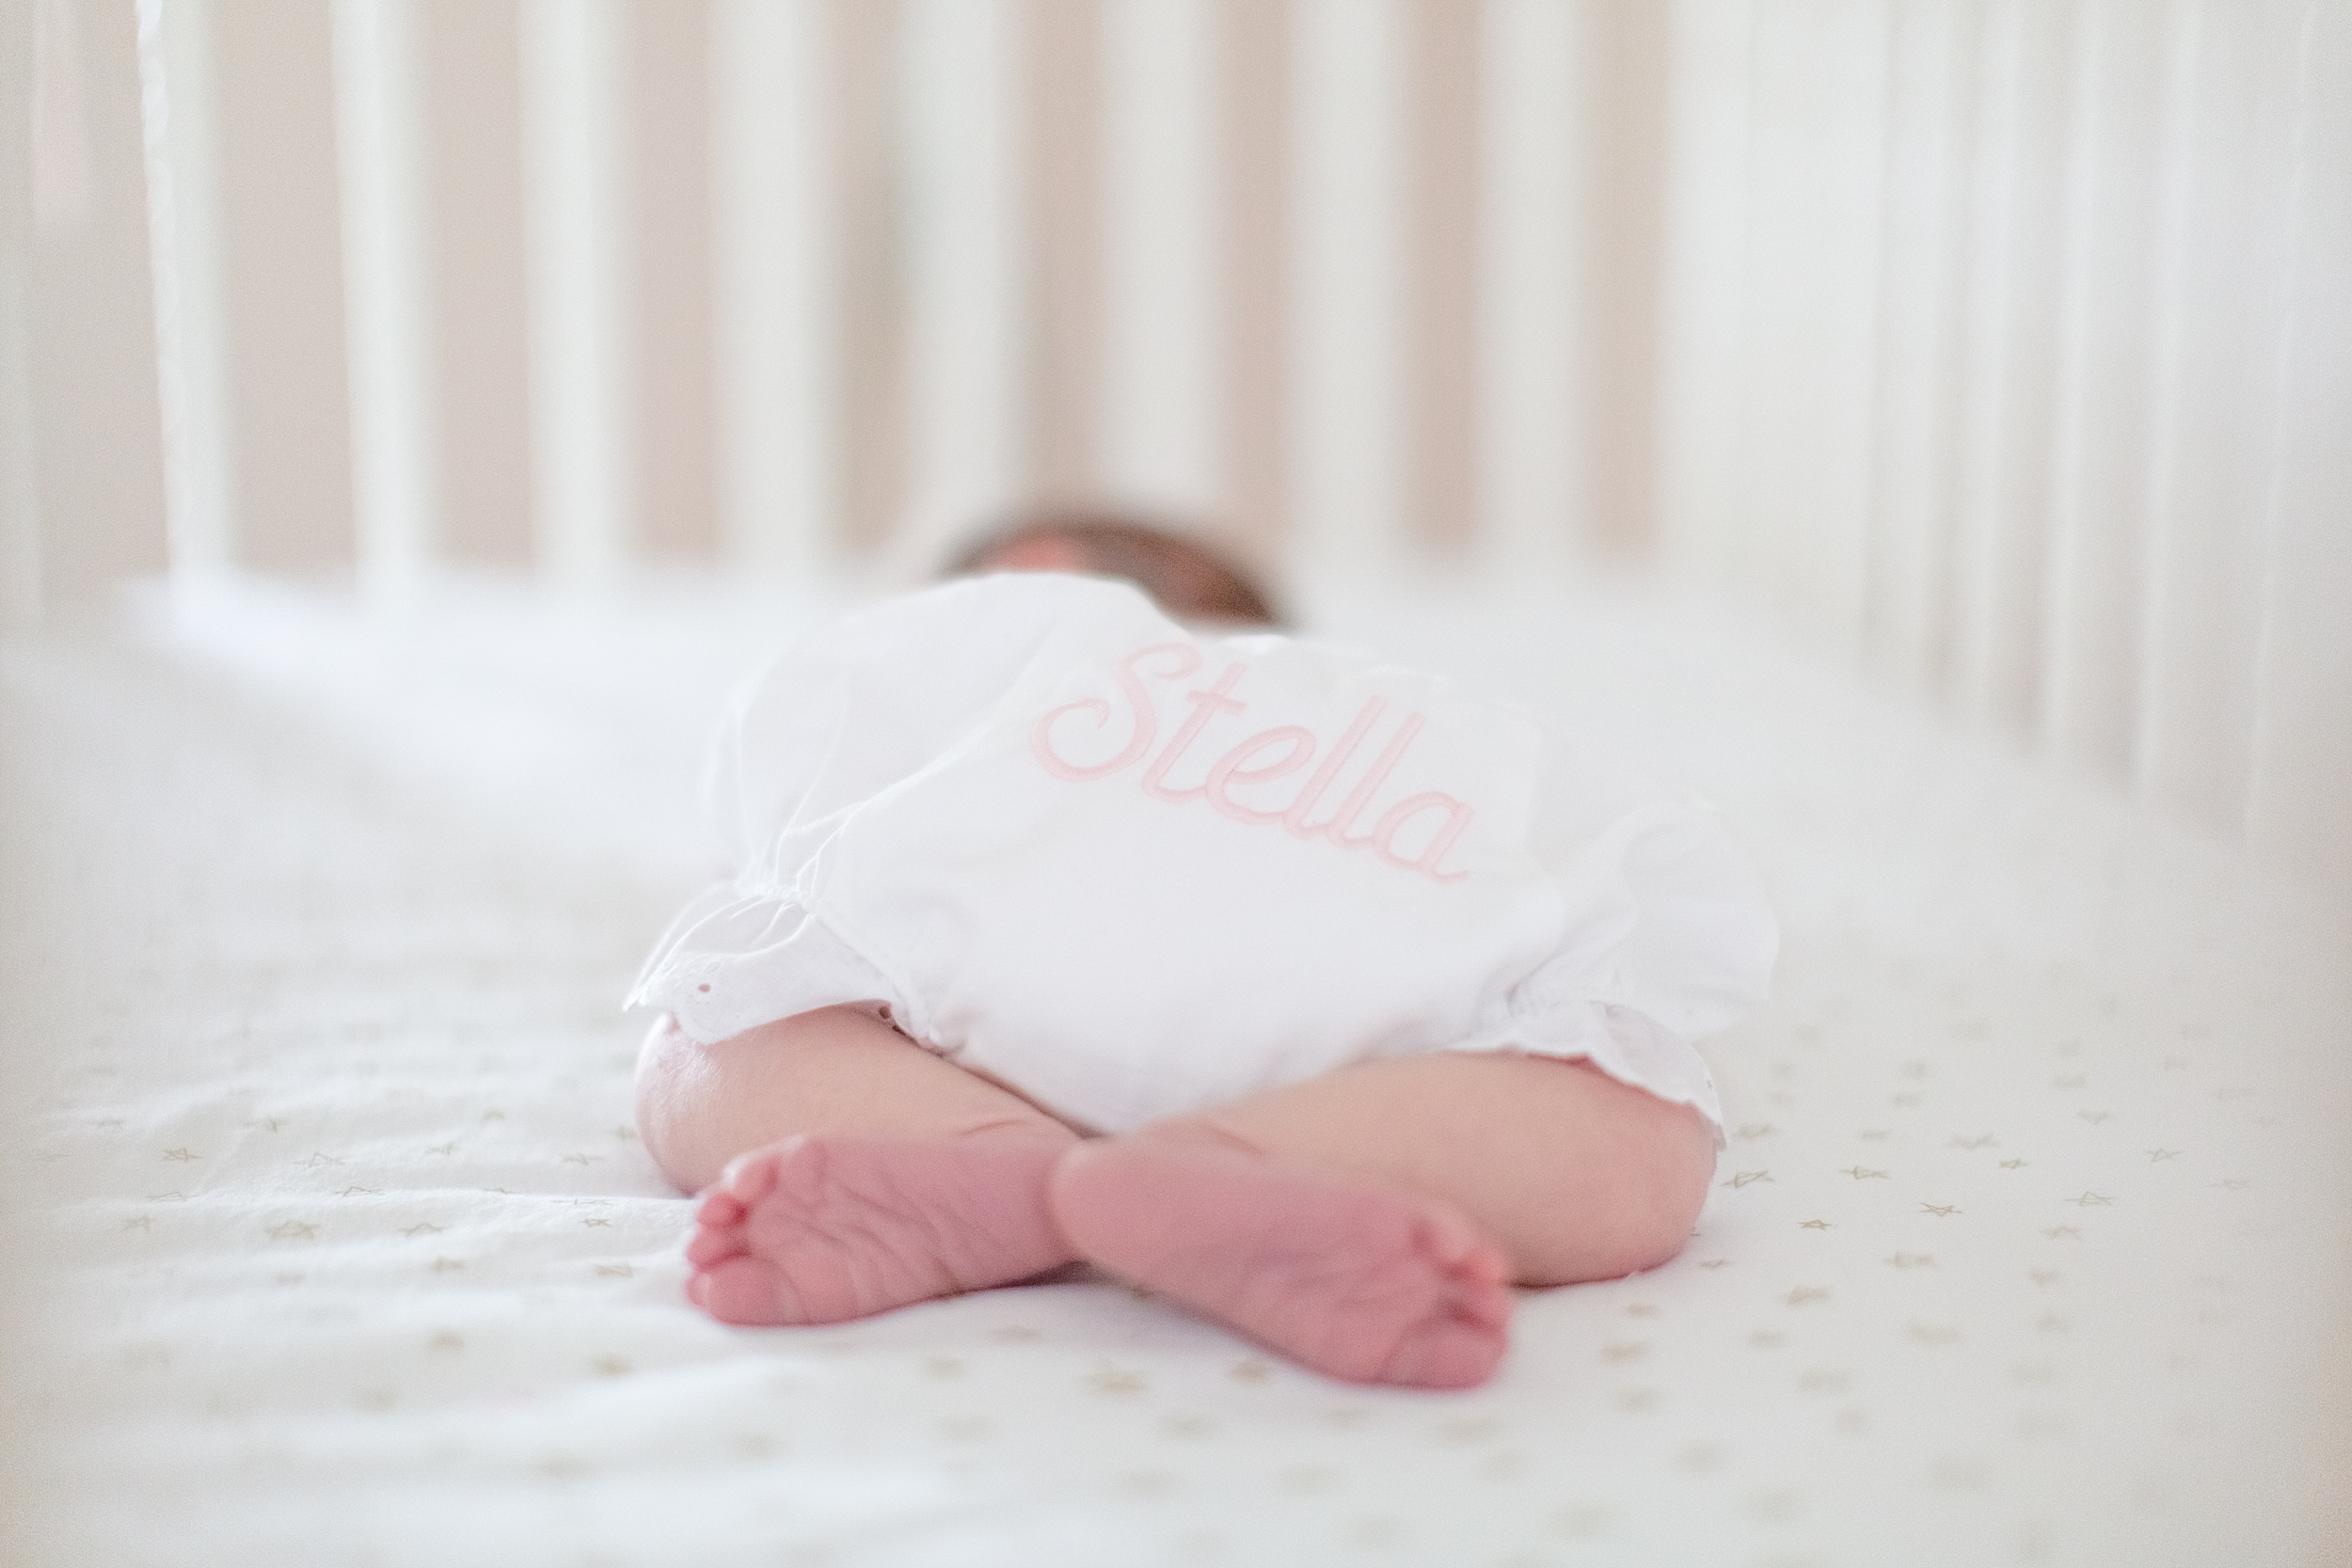 Landon-Schneider-Photography-Newborn-Session-Texas_0069.jpg